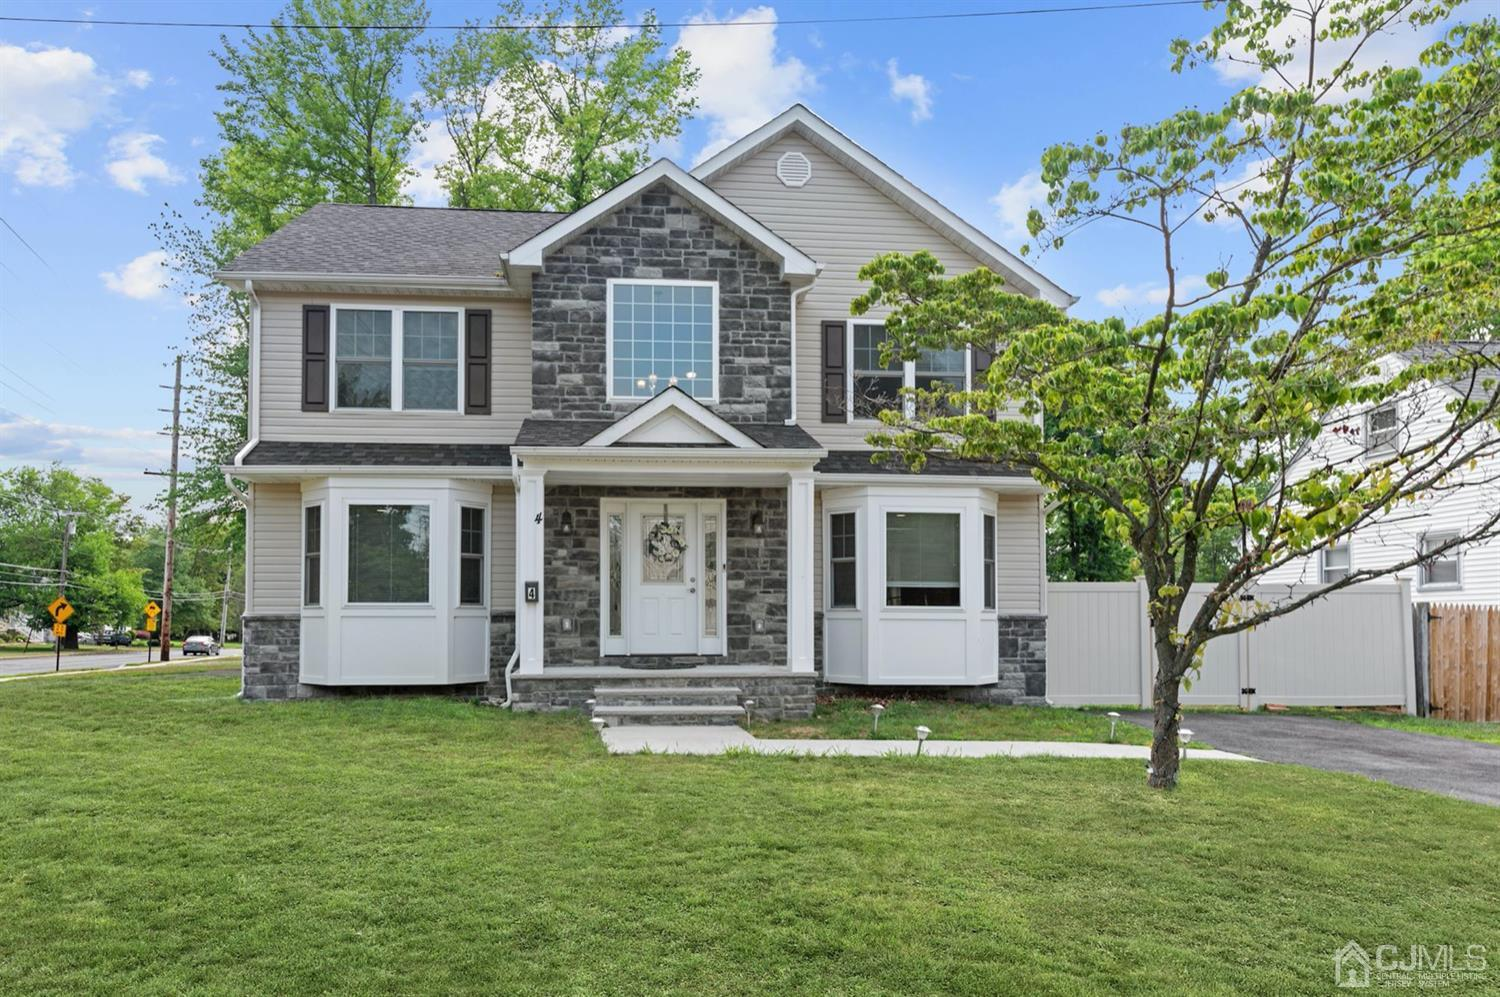 Property for sale at 4 8th Street, Aberdeen,  New Jersey 07747